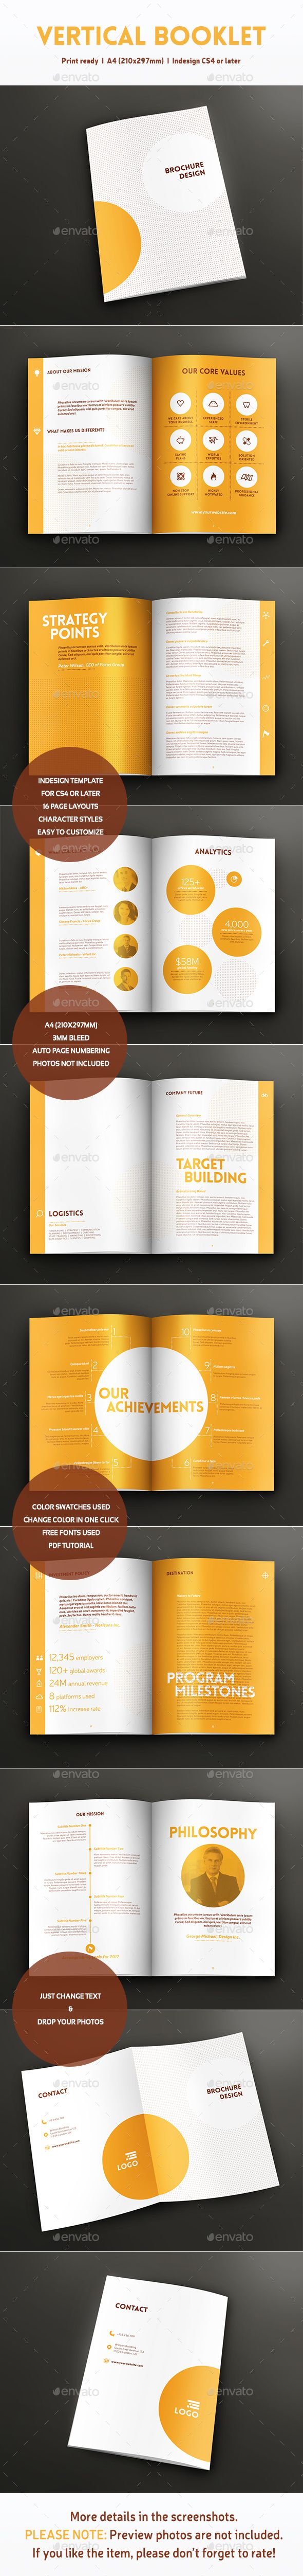 Vertical Booklet | Brochures, Brochure template and Template